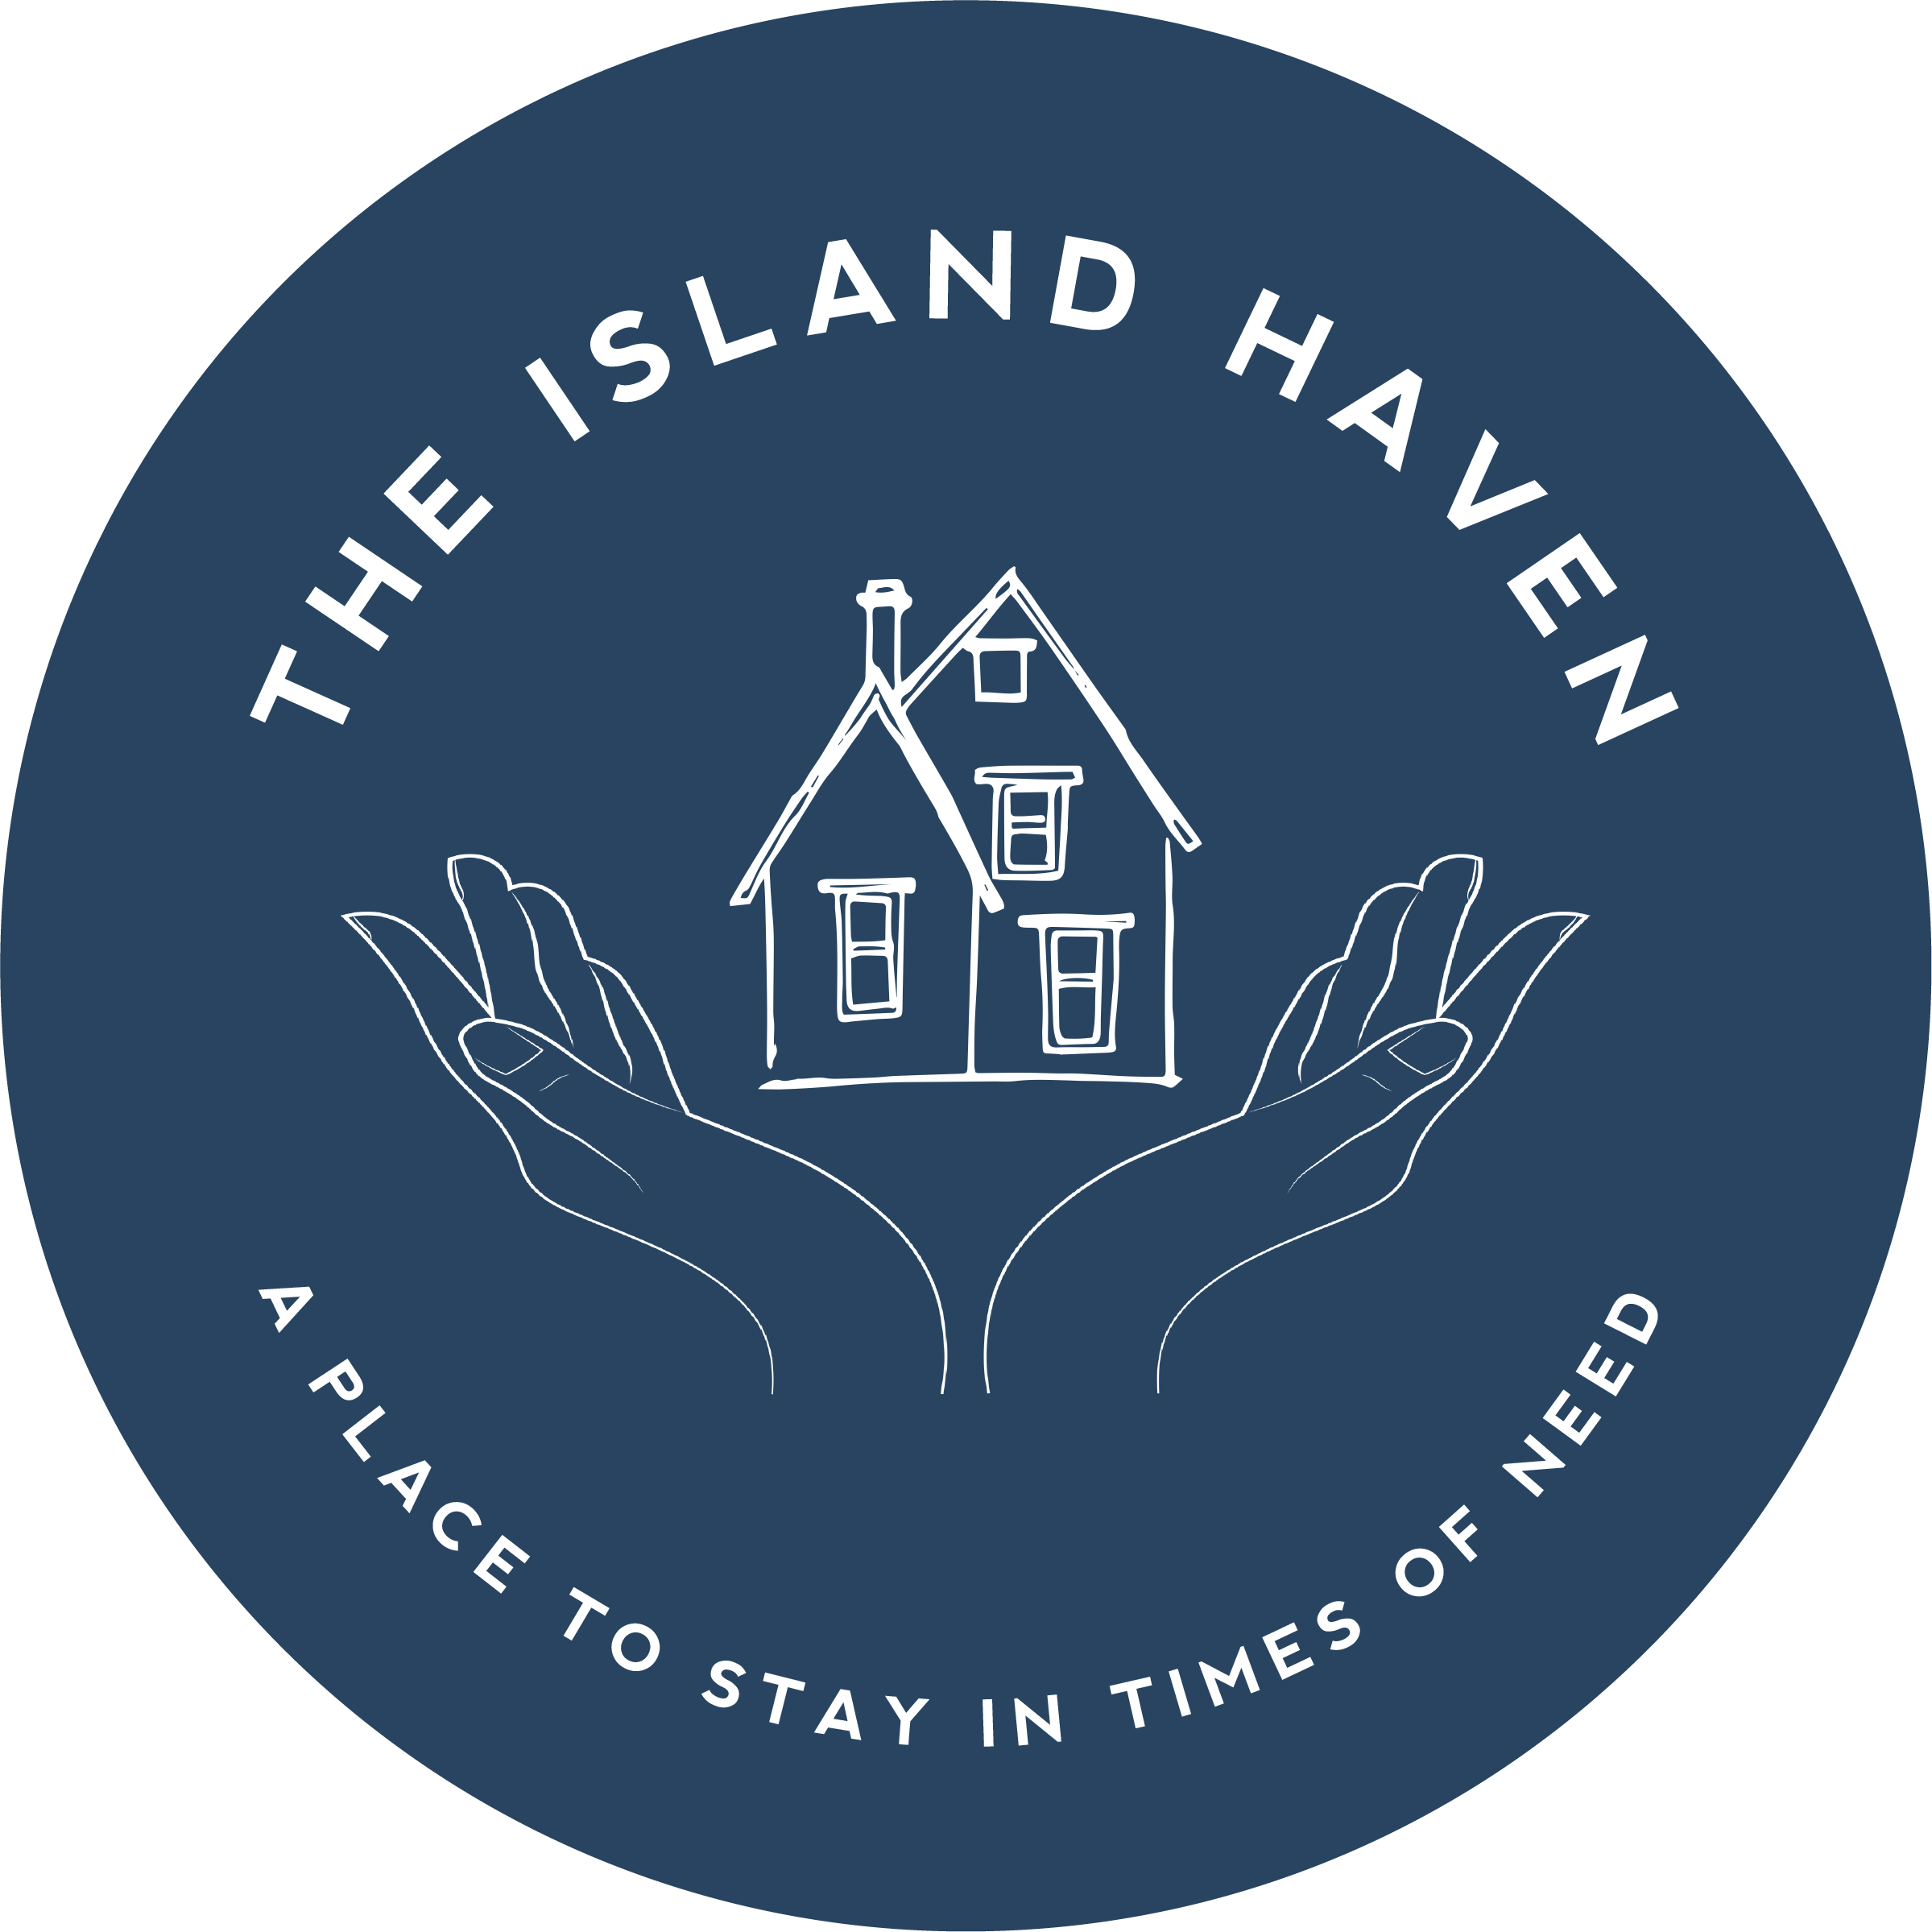 The Island Haven